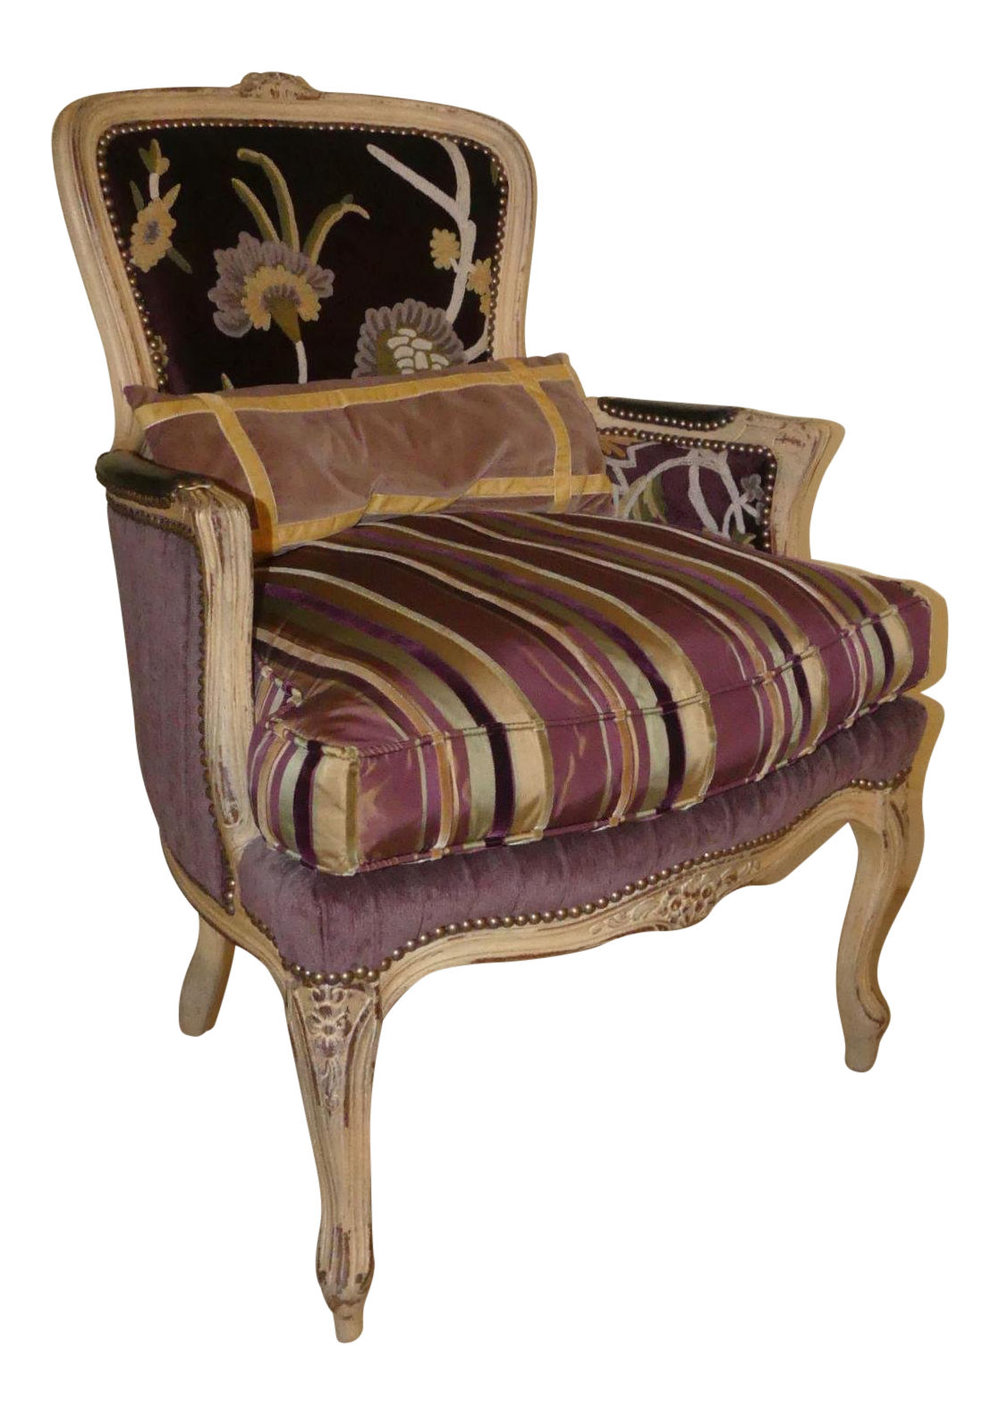 SOLD Old Hickory Tannery French Chair